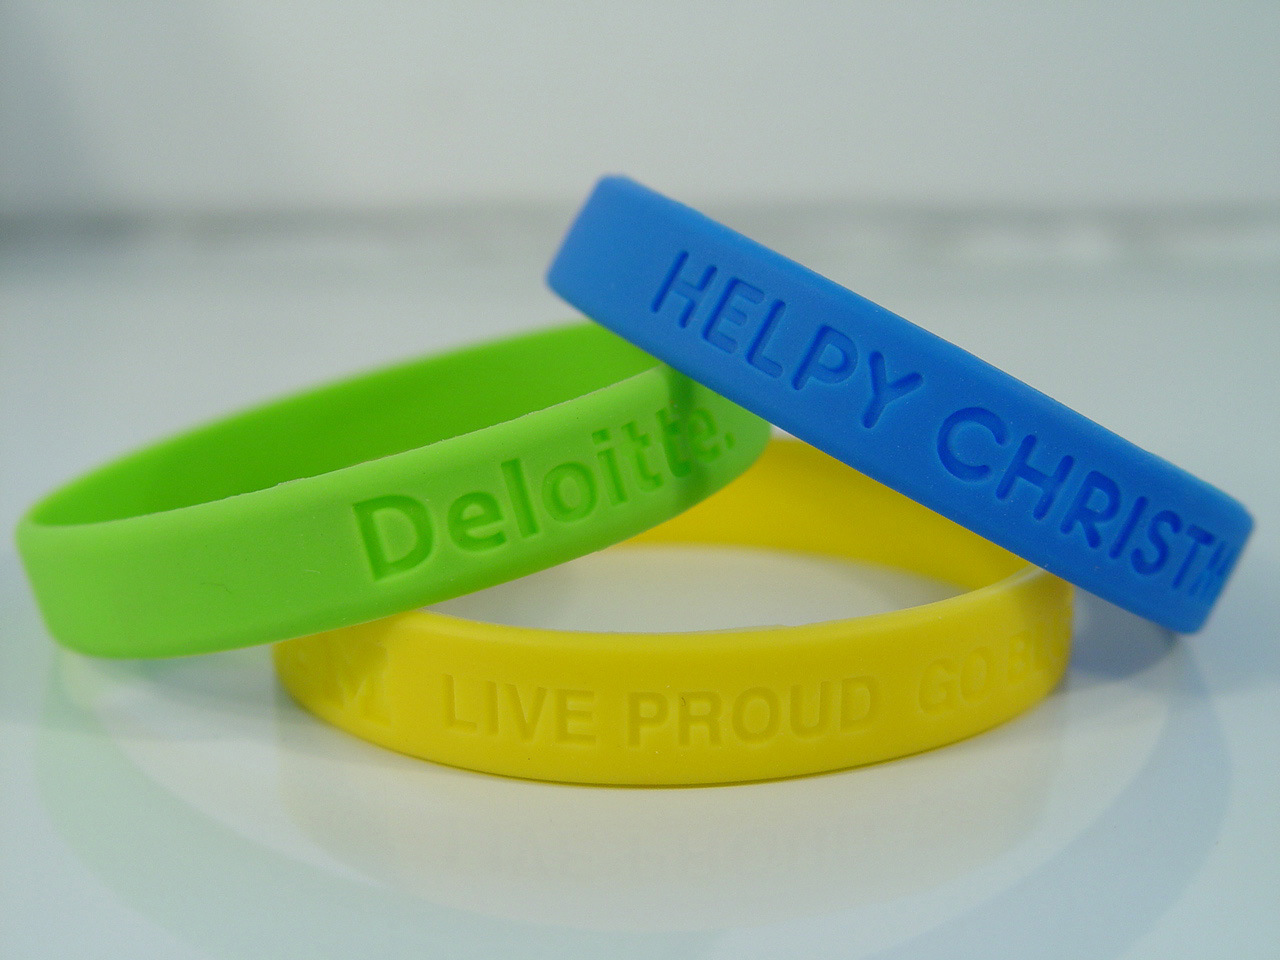 Promotional-Gifts-Silicone-Bracelet.jpg